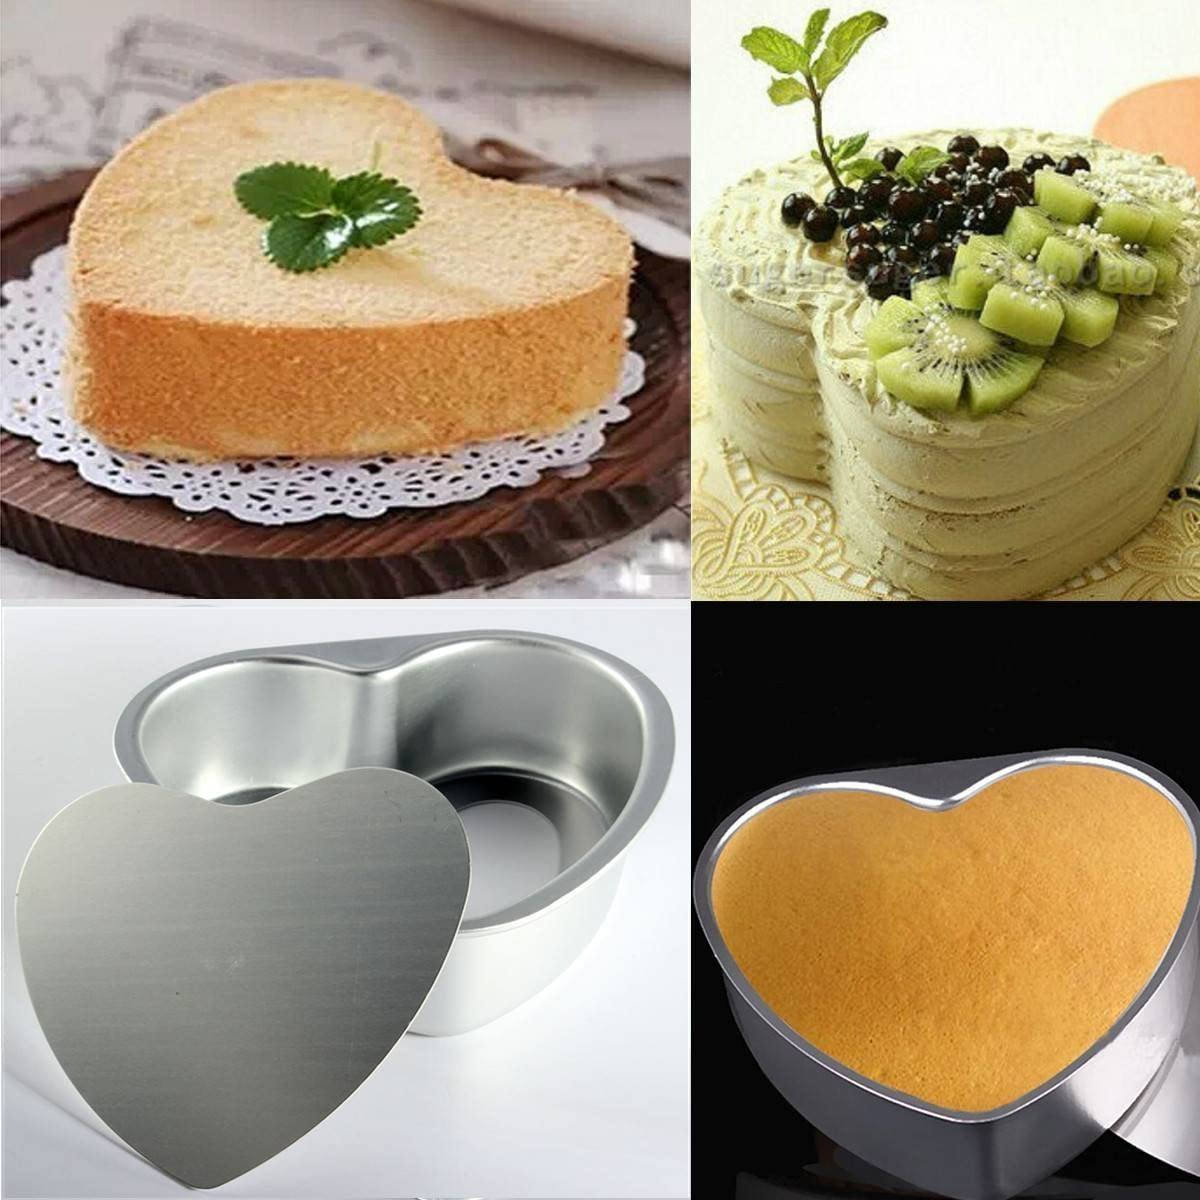 LepoHome 2 pcs Aluminum Heart Shaped Cake Pan Set DIY Baking Mold Tool with Removable Bottom 6 inch /& 8 inch